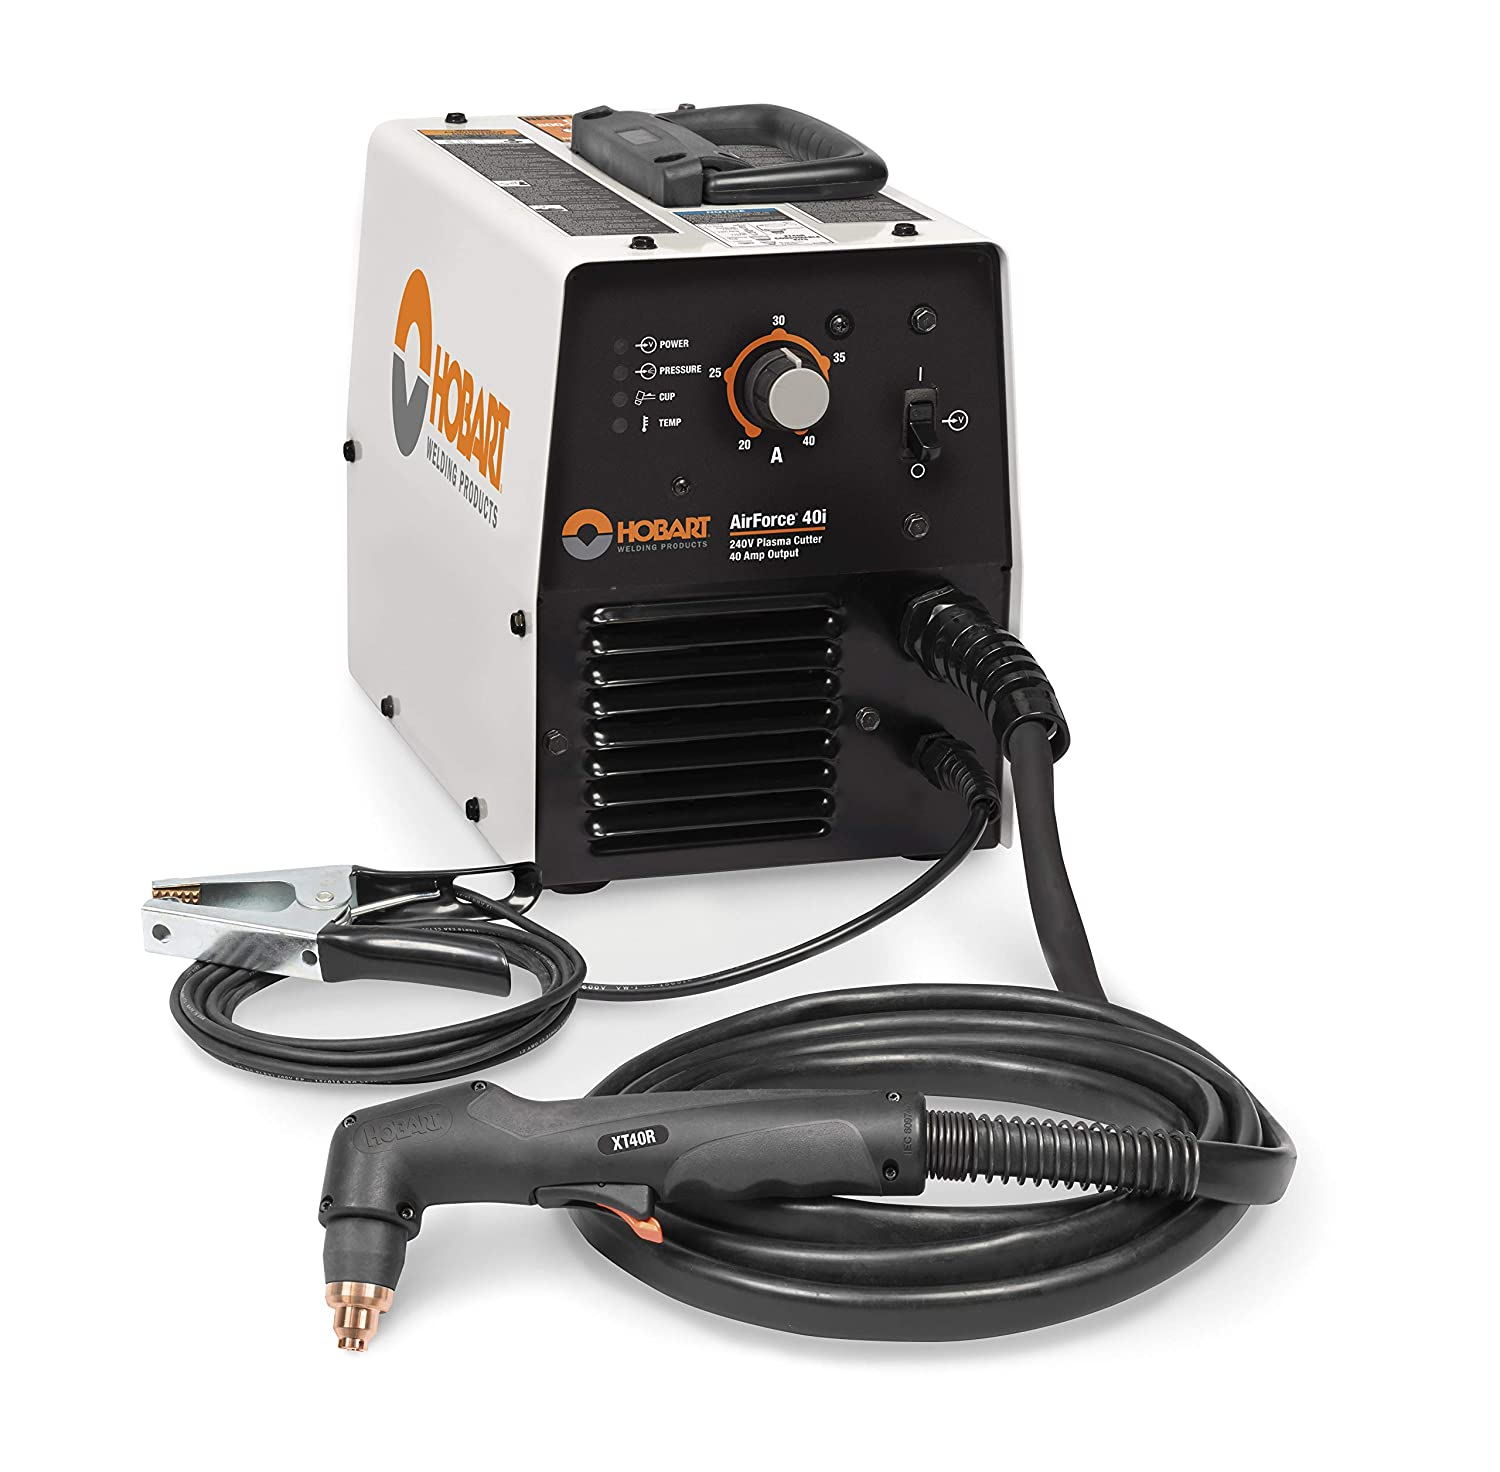 best plasma cutter: You need Hobart 500566 Airforce 40i Plasma Cutter for industrial use